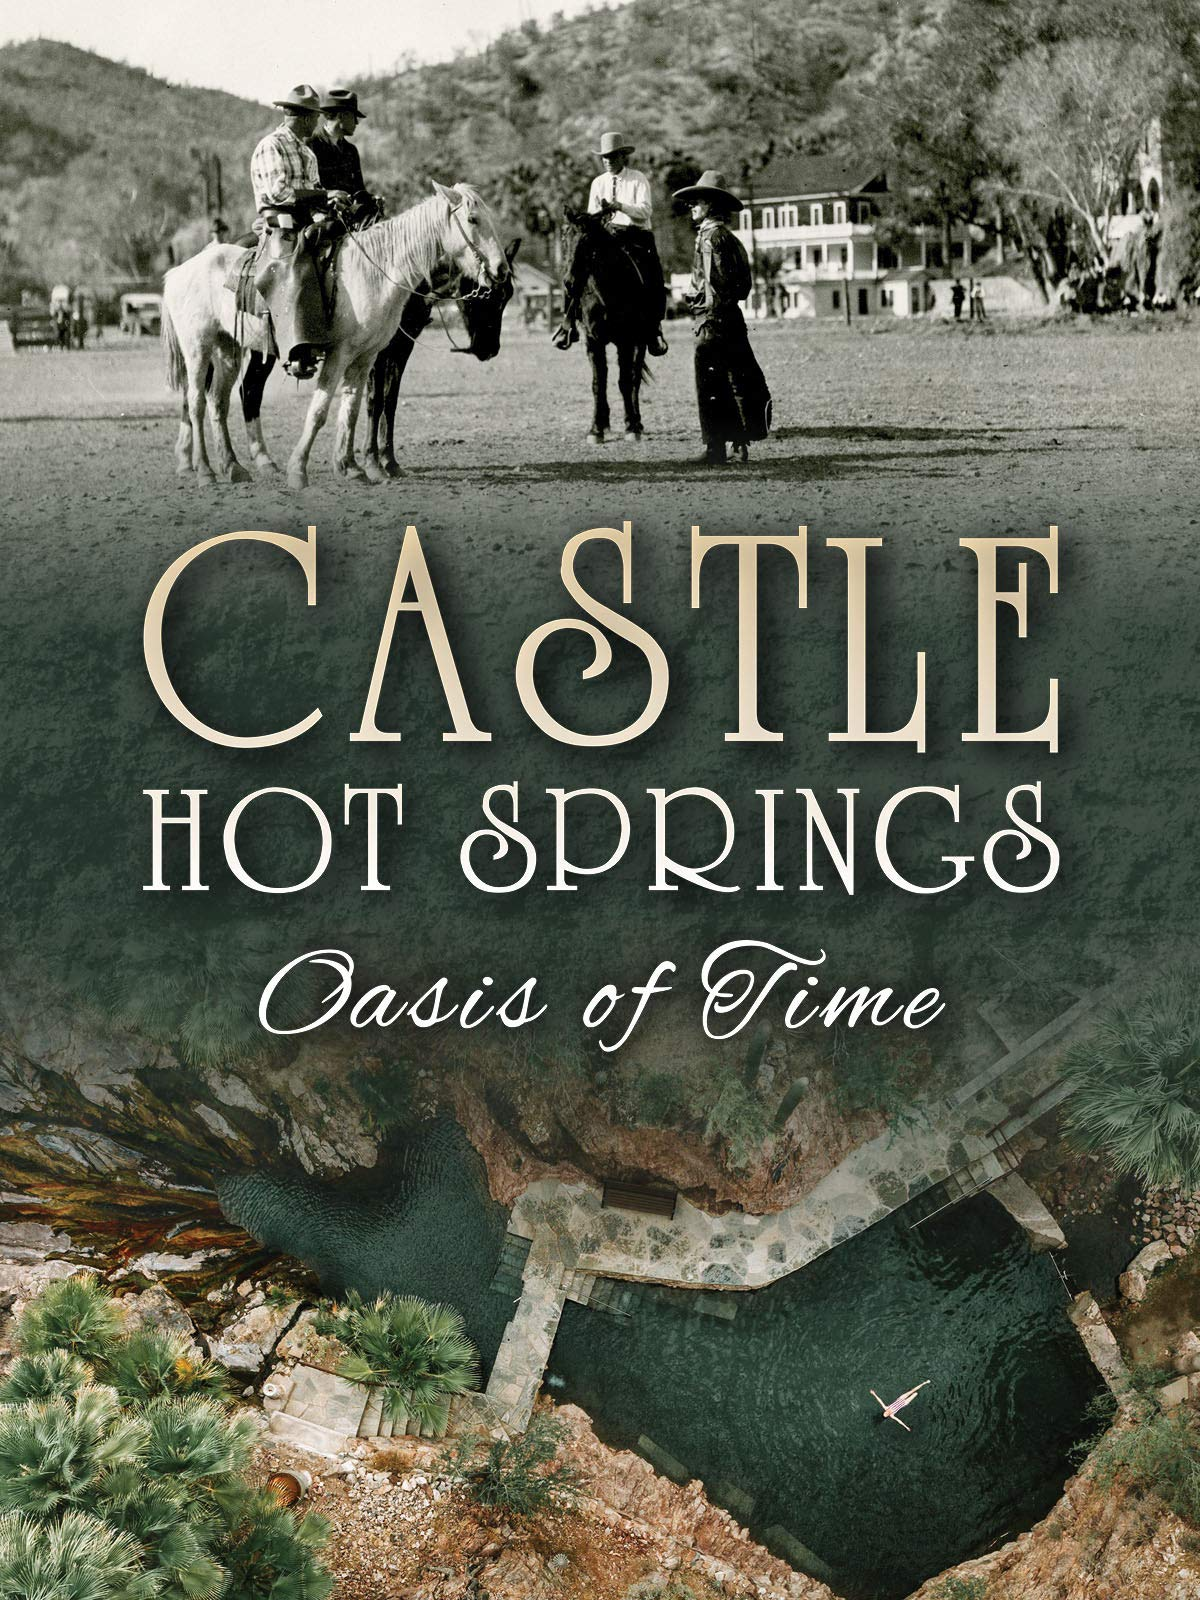 Castle Hot Springs: Oasis of Time